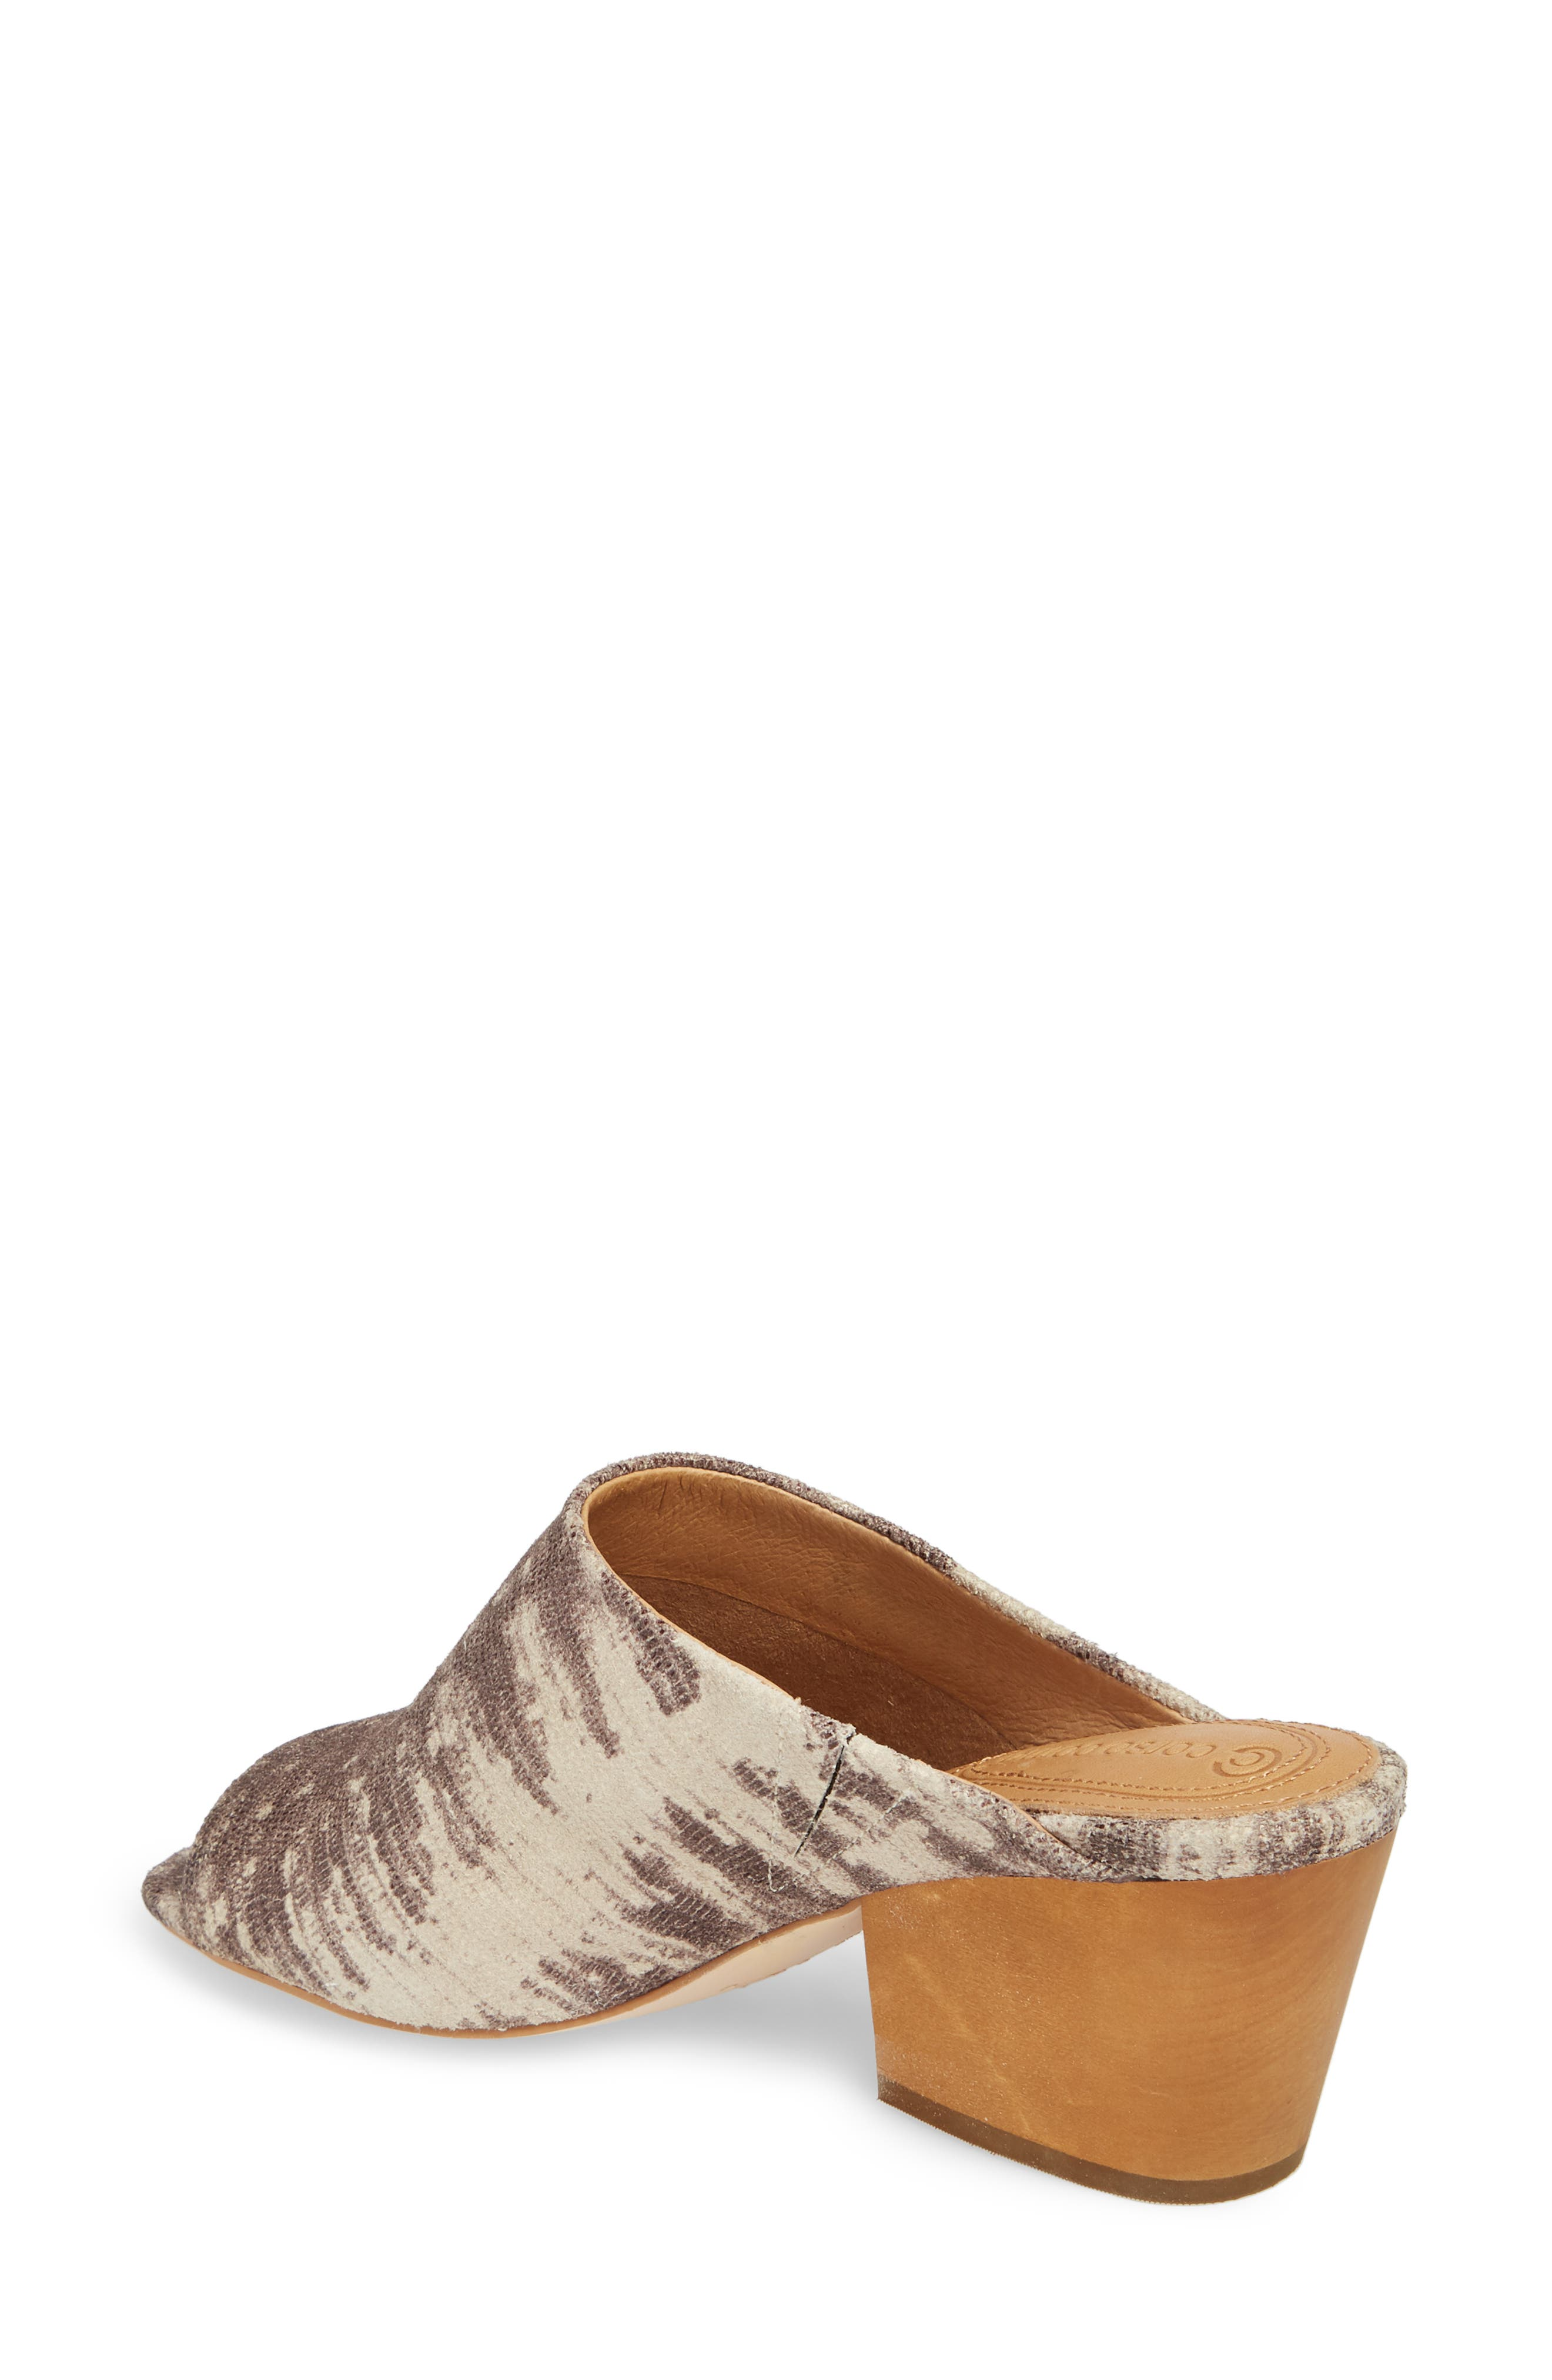 Intra Block Heel Mule,                             Alternate thumbnail 2, color,                             NATURAL LEATHER